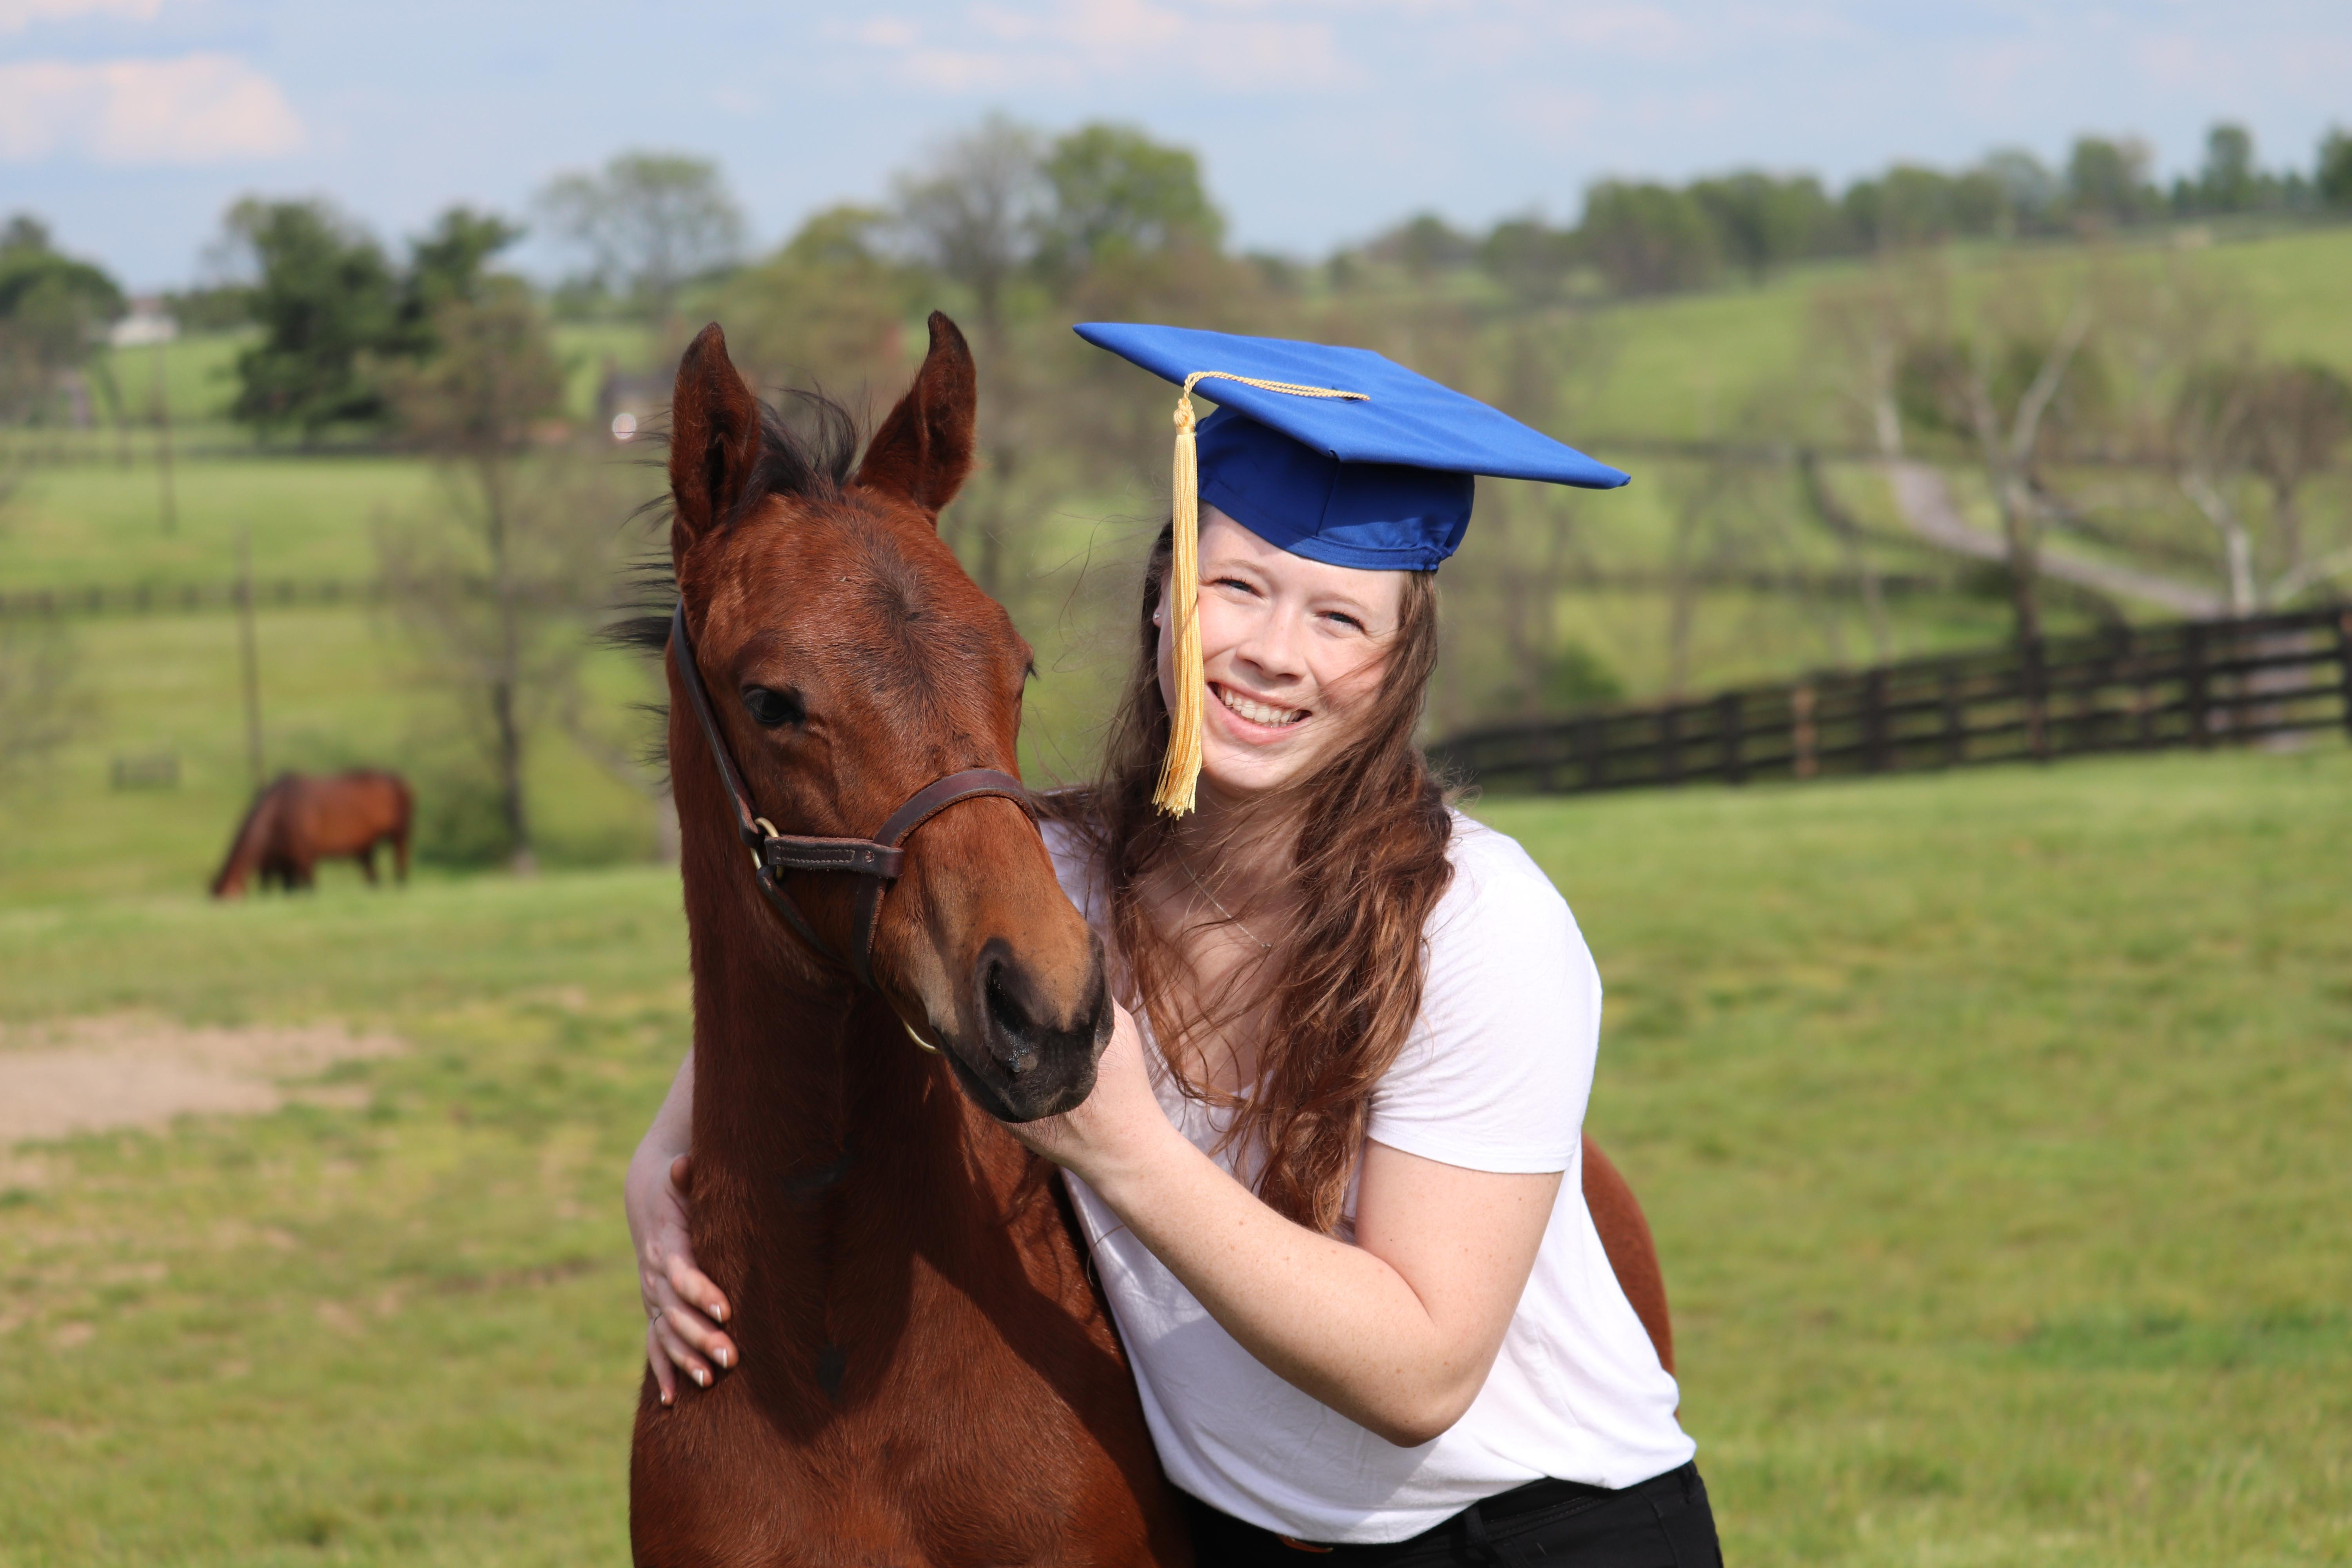 Hannah Moriarty in graduation cap, standing next to horse.